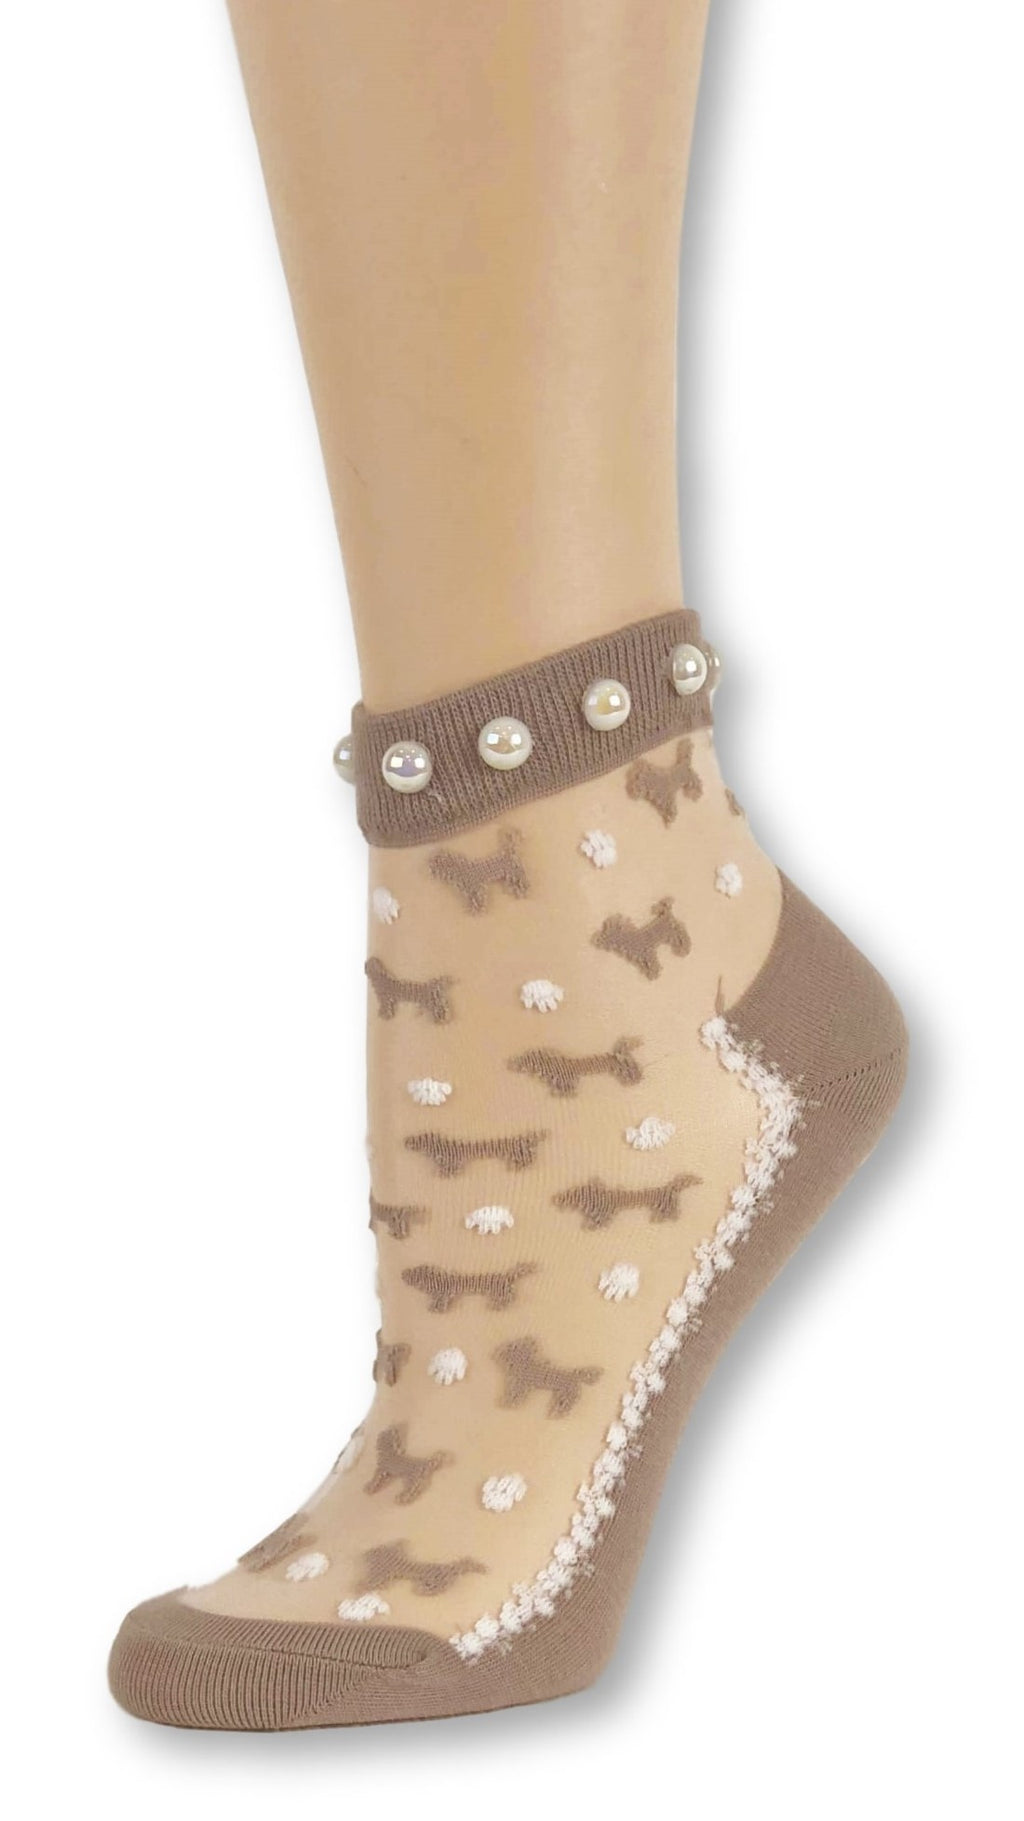 Brown Puppies Custom Sheer Socks with beads - Global Trendz Fashion®